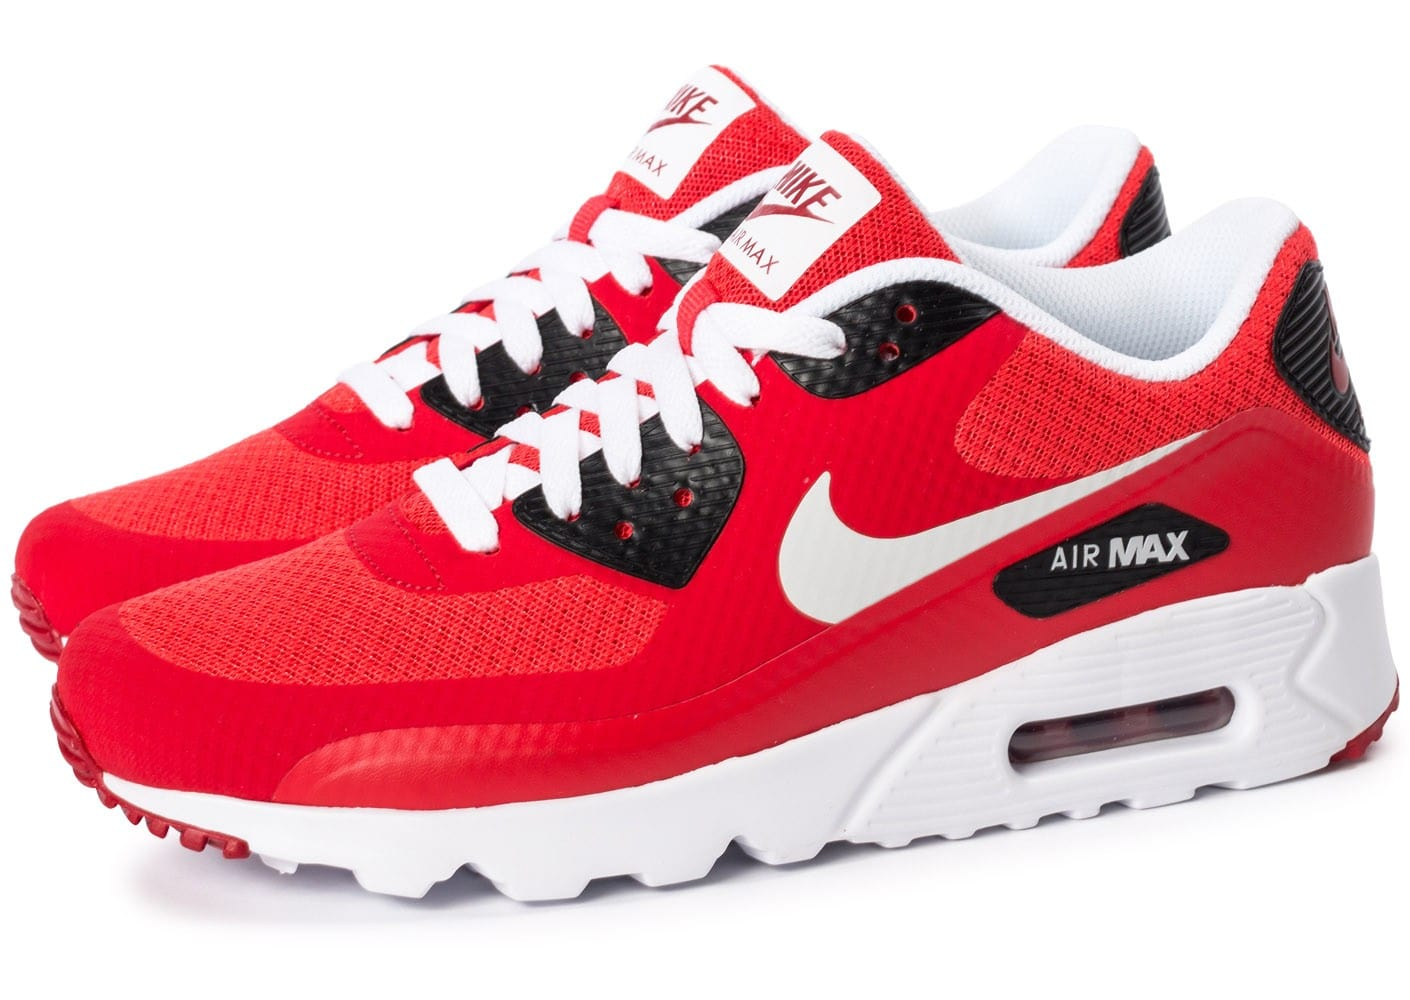 soldes nike air max 90 ultra essential rouge chaussures homme chausport. Black Bedroom Furniture Sets. Home Design Ideas